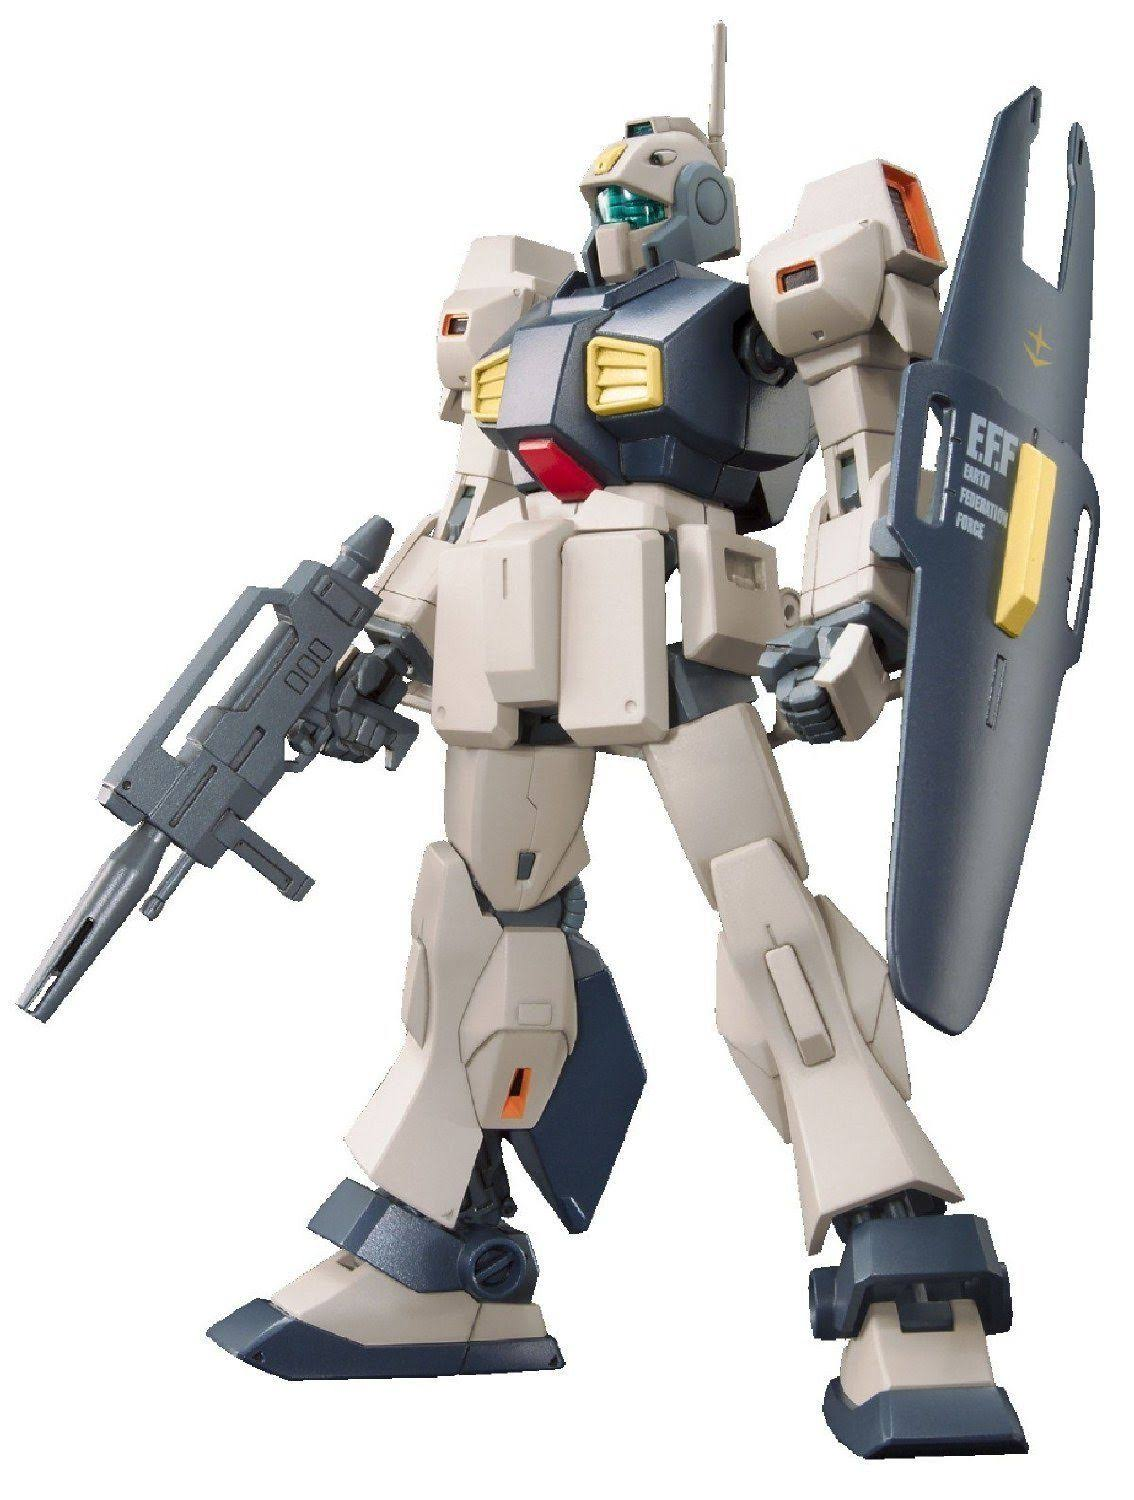 Bandai Gundam High Grade Universal Century Plastic Model Kit - Scale 1:144